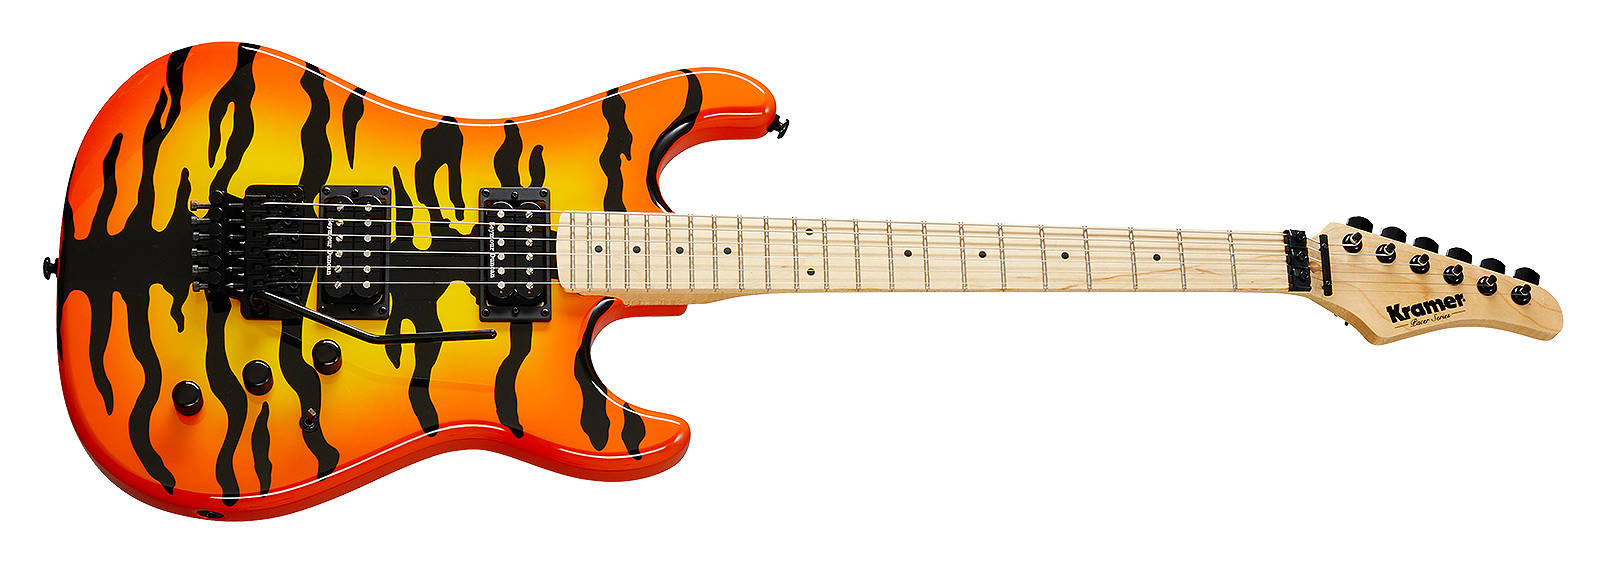 Kramer Pacer Vintage Orange Tiger